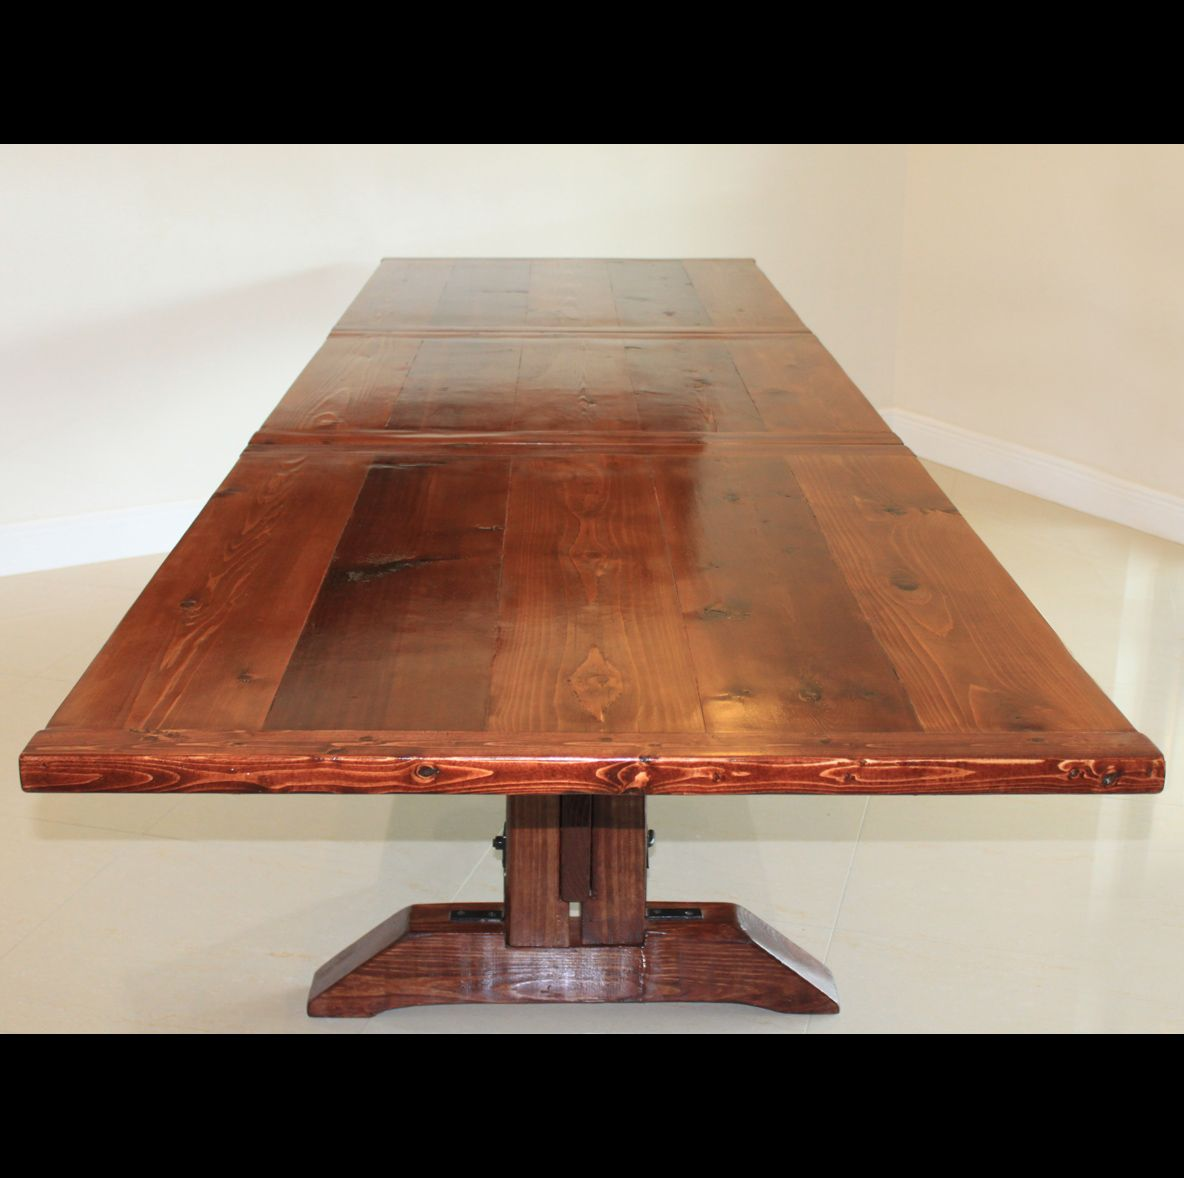 Hand Crafted Large Extendable Dining Table By Fine Dining